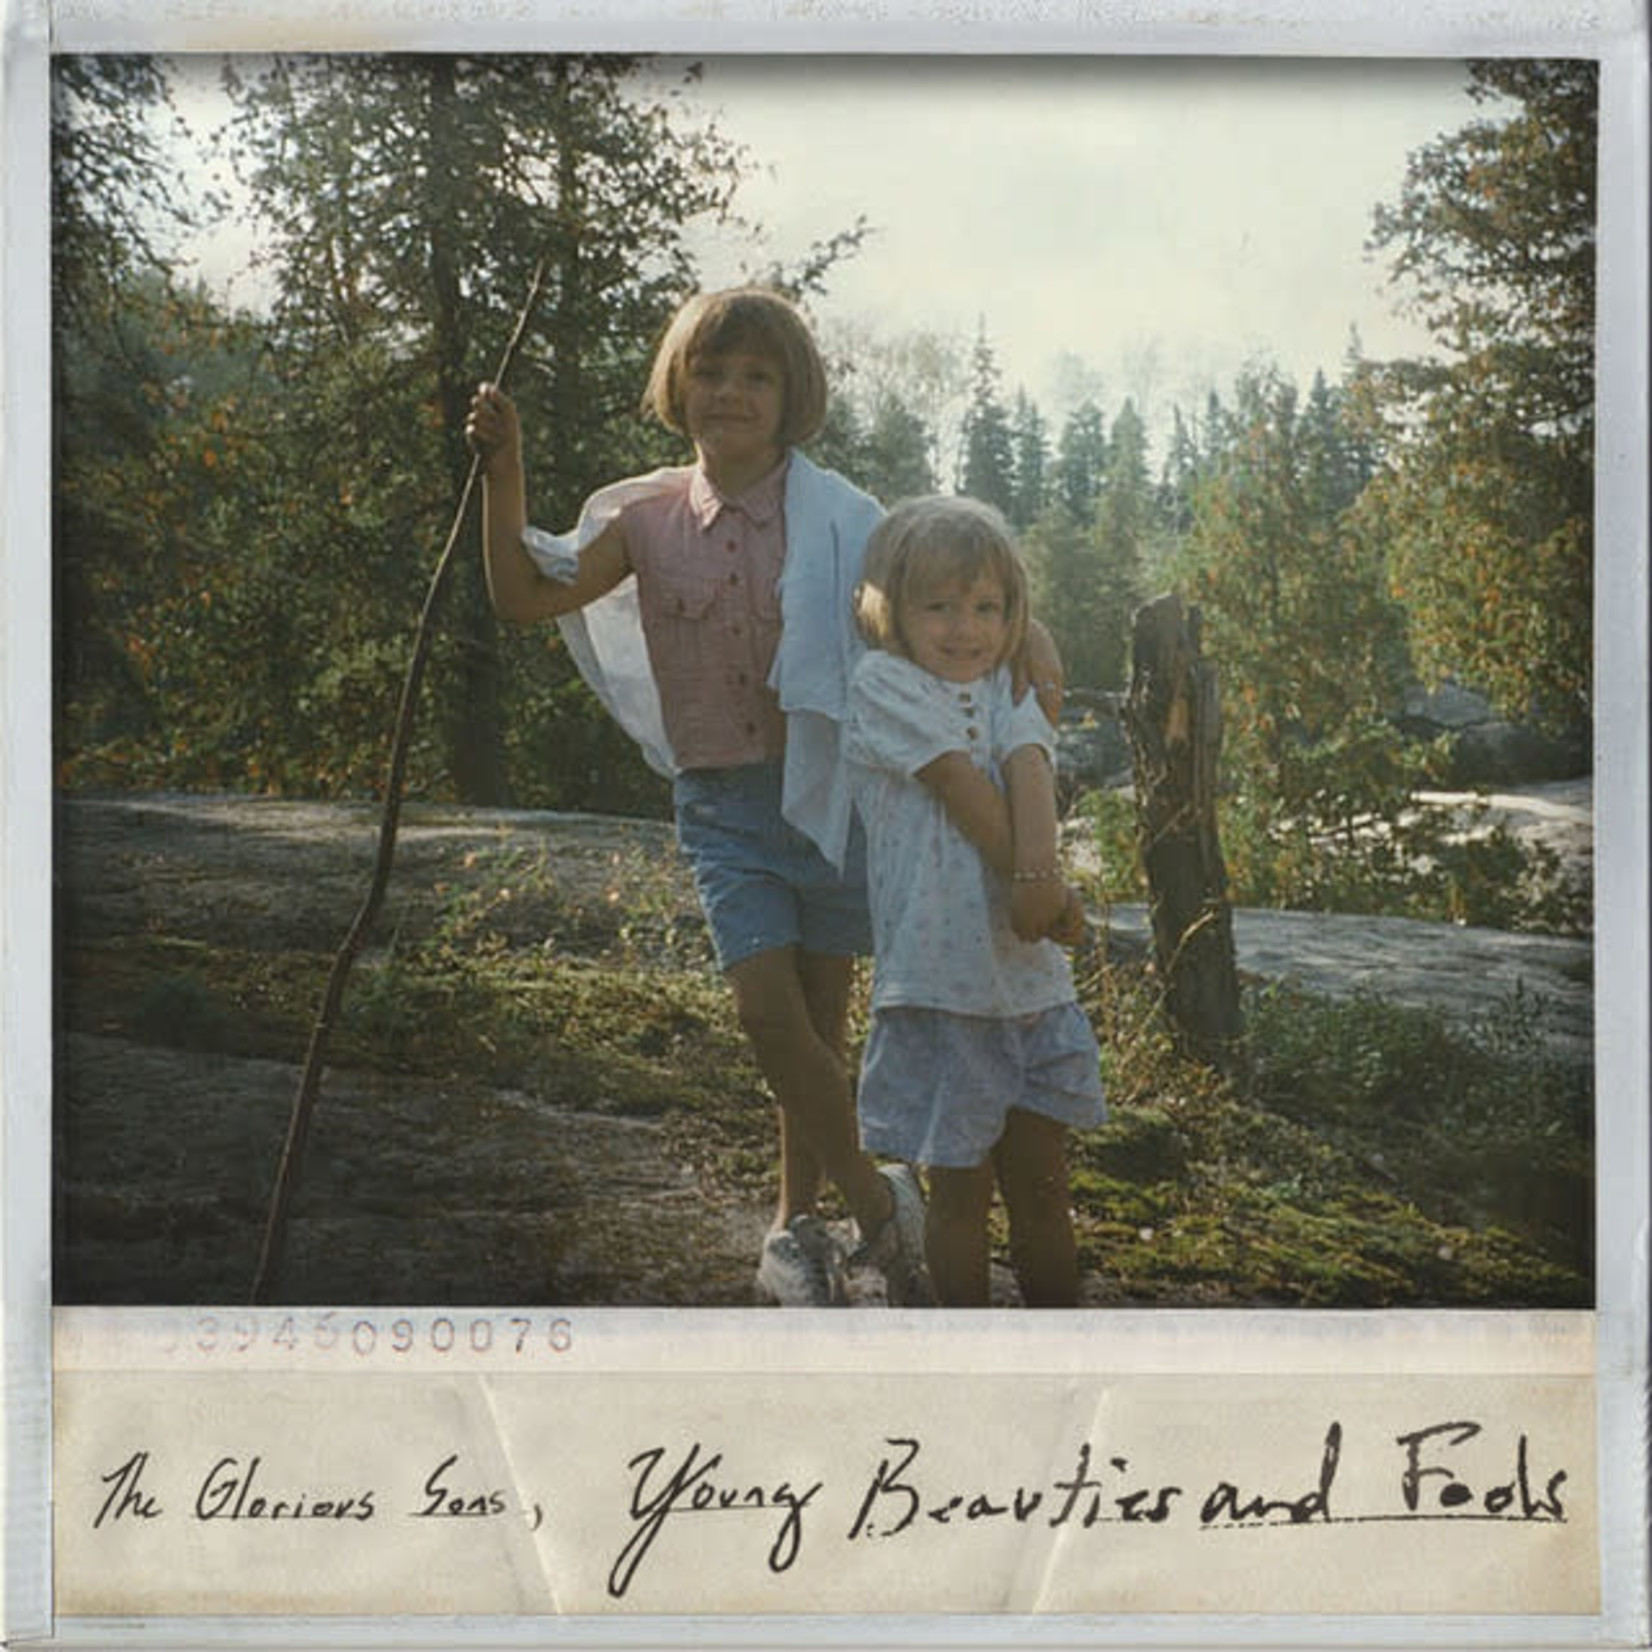 Vinyl Glorious Sons - Young Beauties and Fools